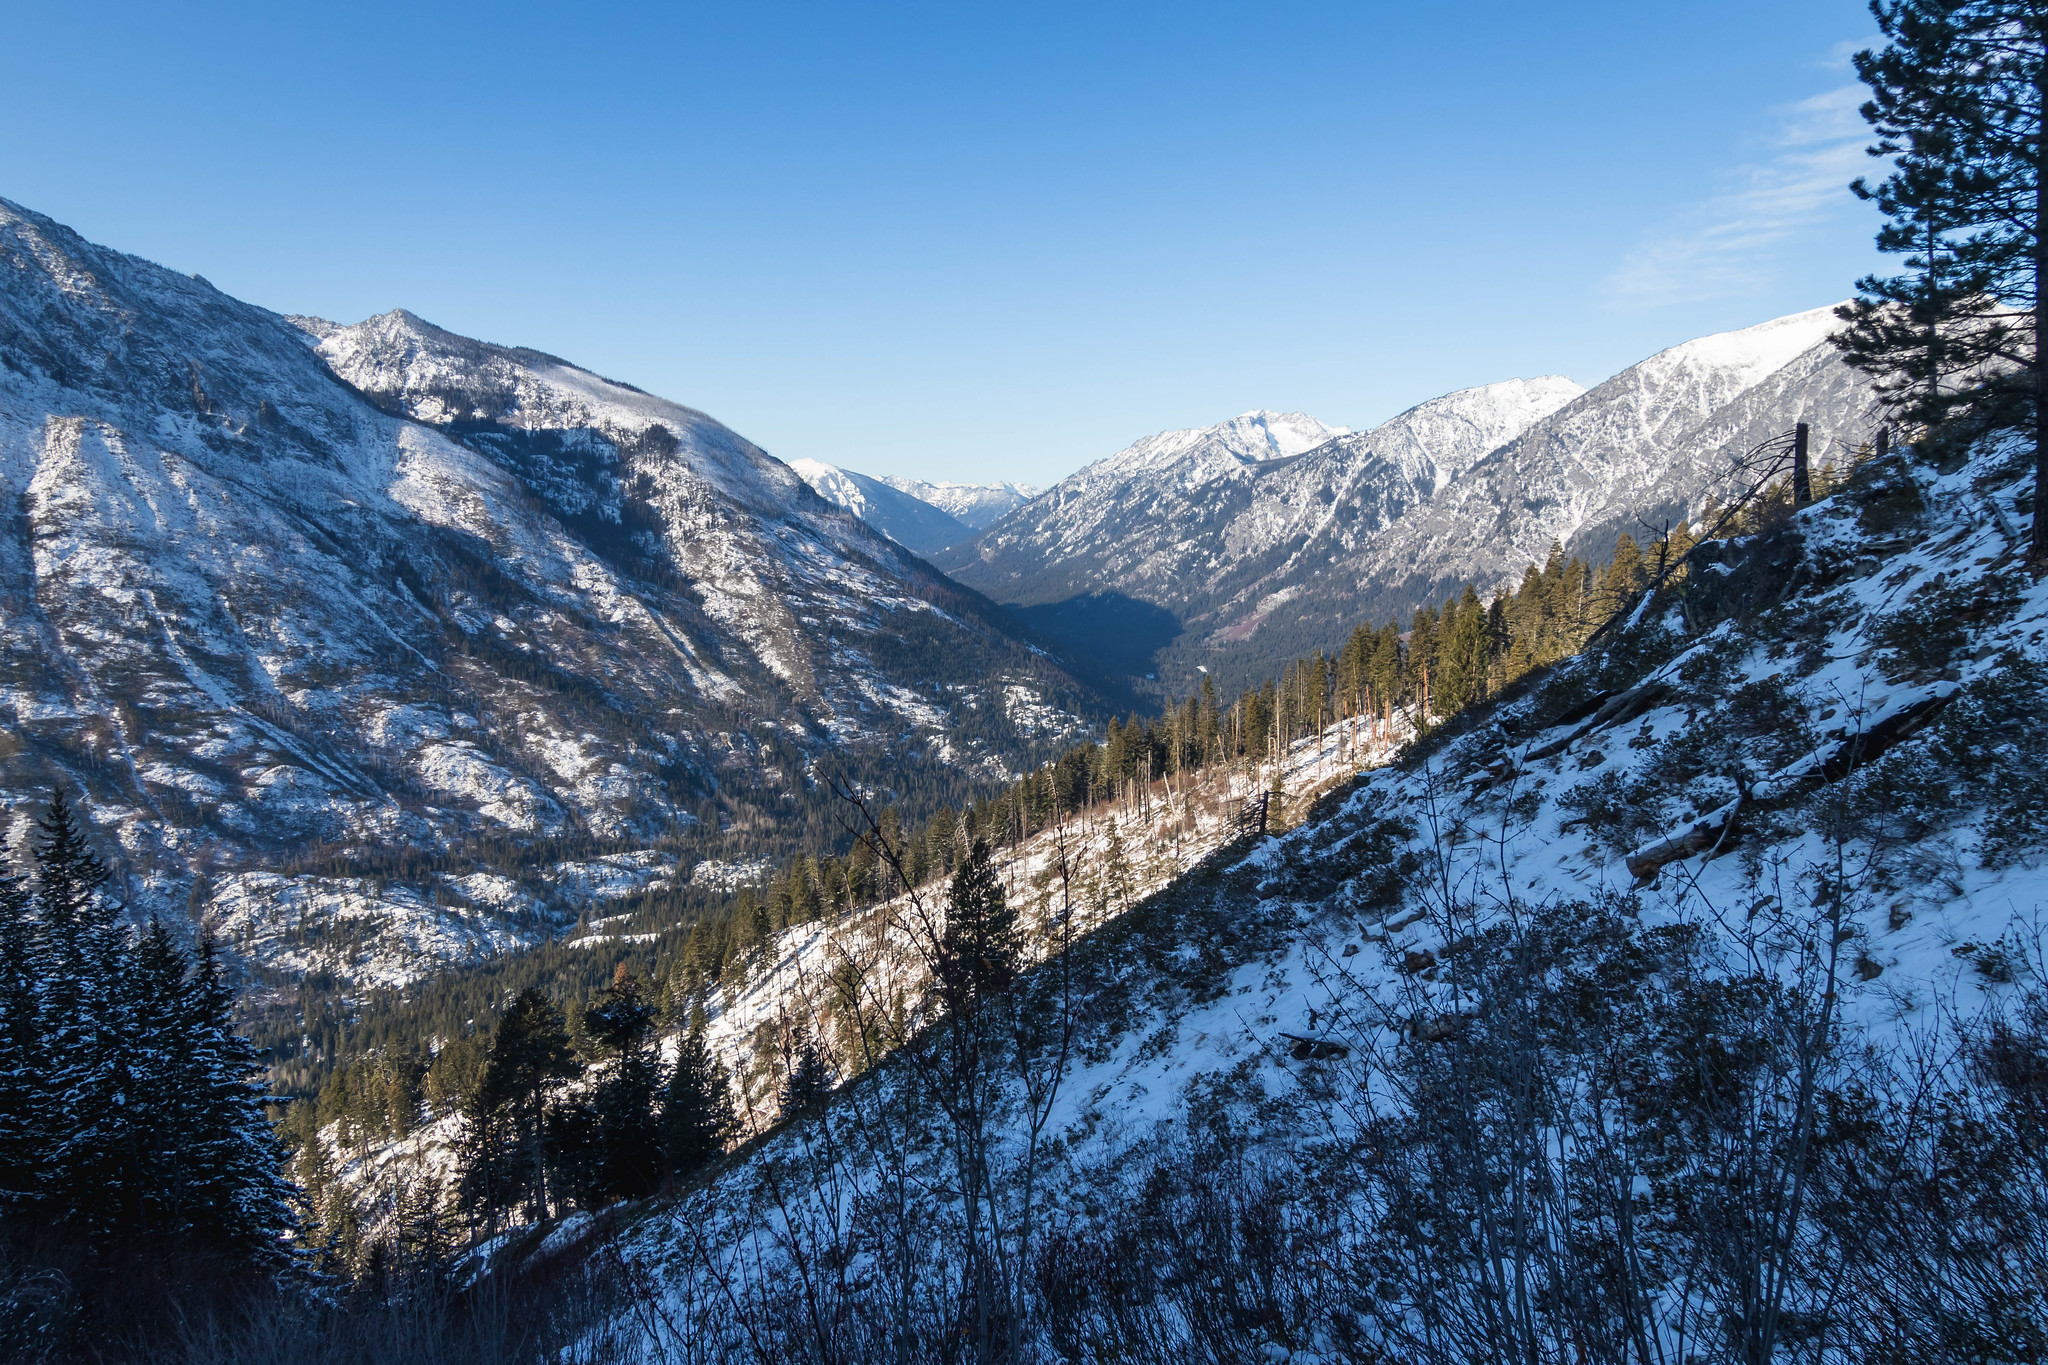 Icicle Creek Valley in full view